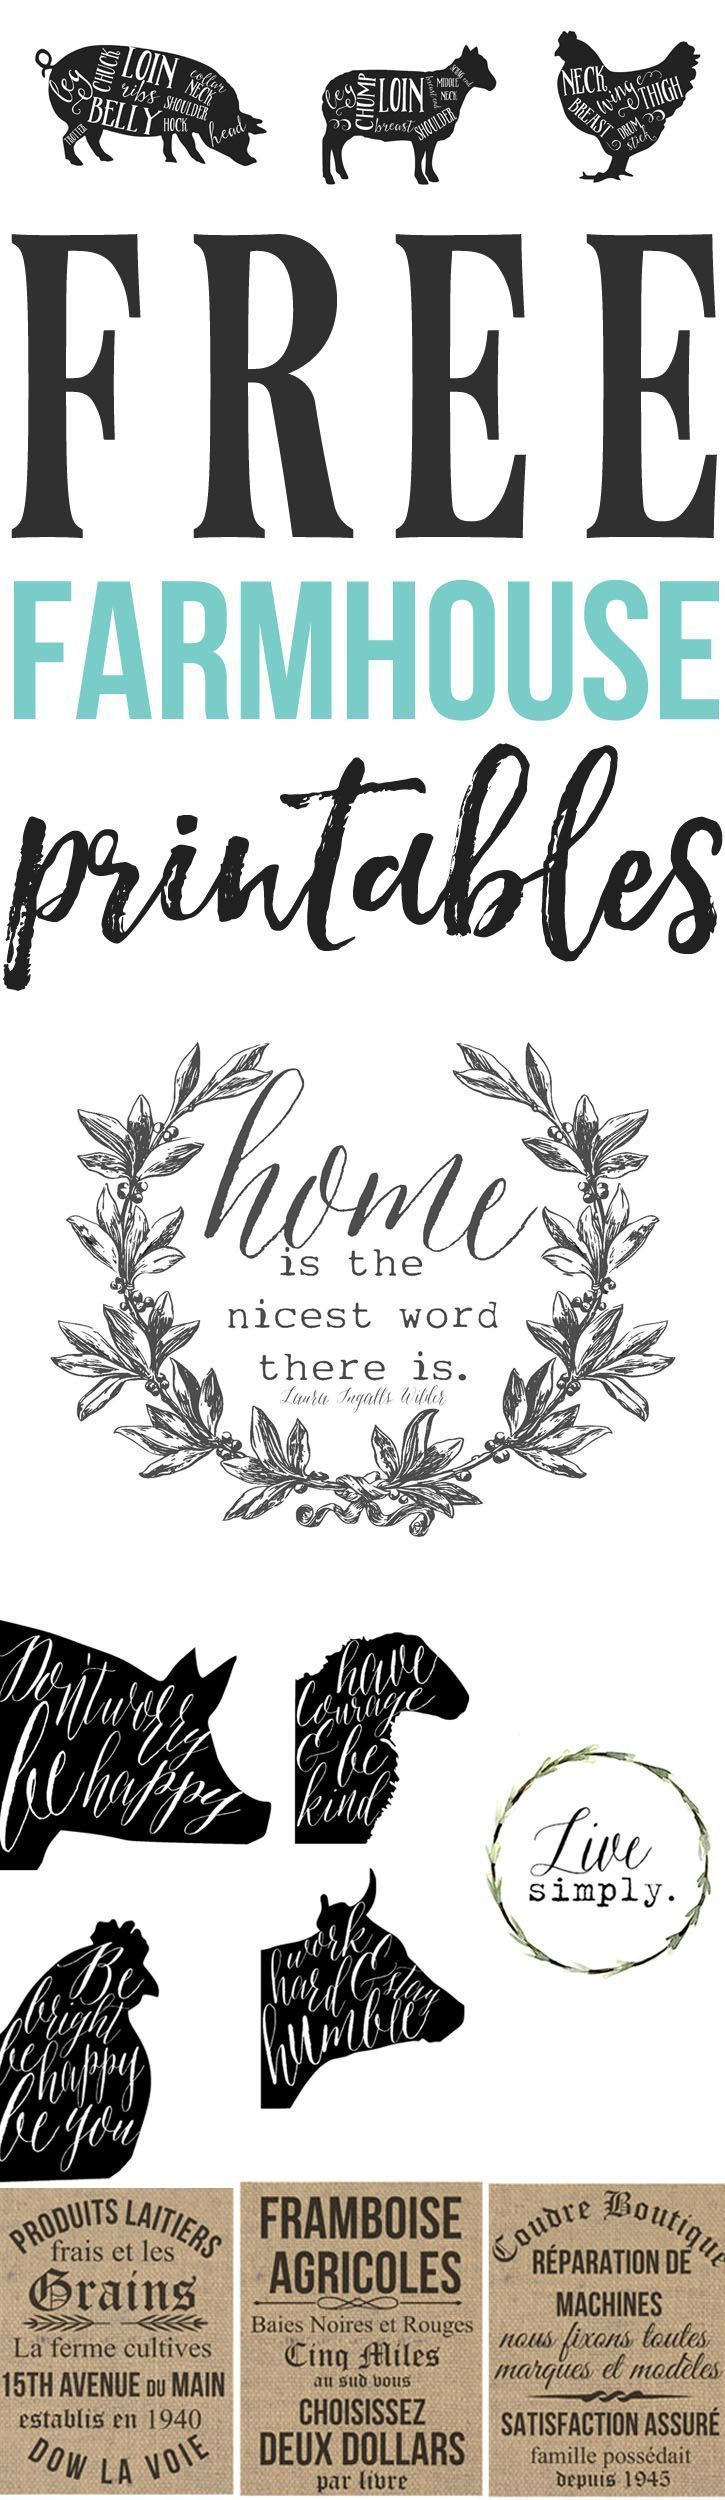 Free farmhouse printables! If you are anything like me than you love a good free printable! Its an added bonus if its farmhouse inspired! I have been working on